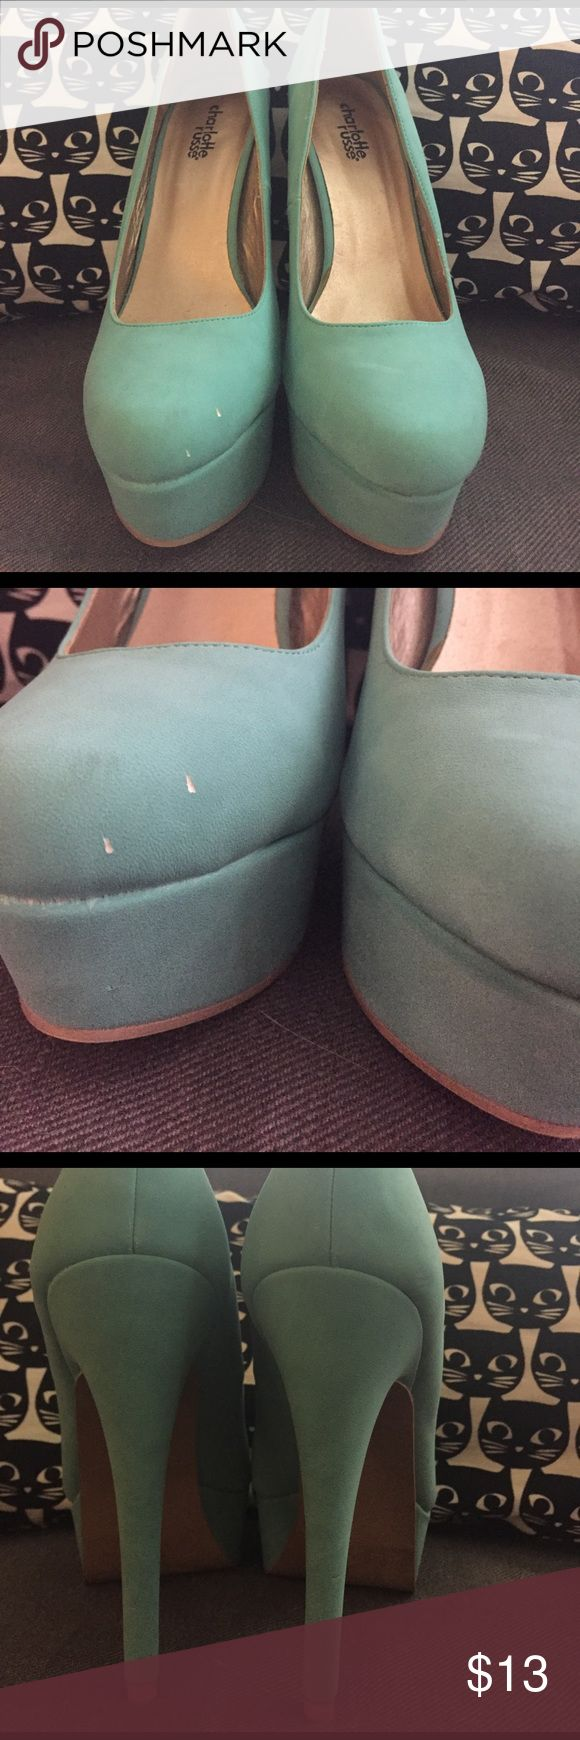 Mint pumps Never worn but got chipped on the toe. The dirt under the heels from the price sticker I tried to remove. Charlotte Russe Shoes Heels